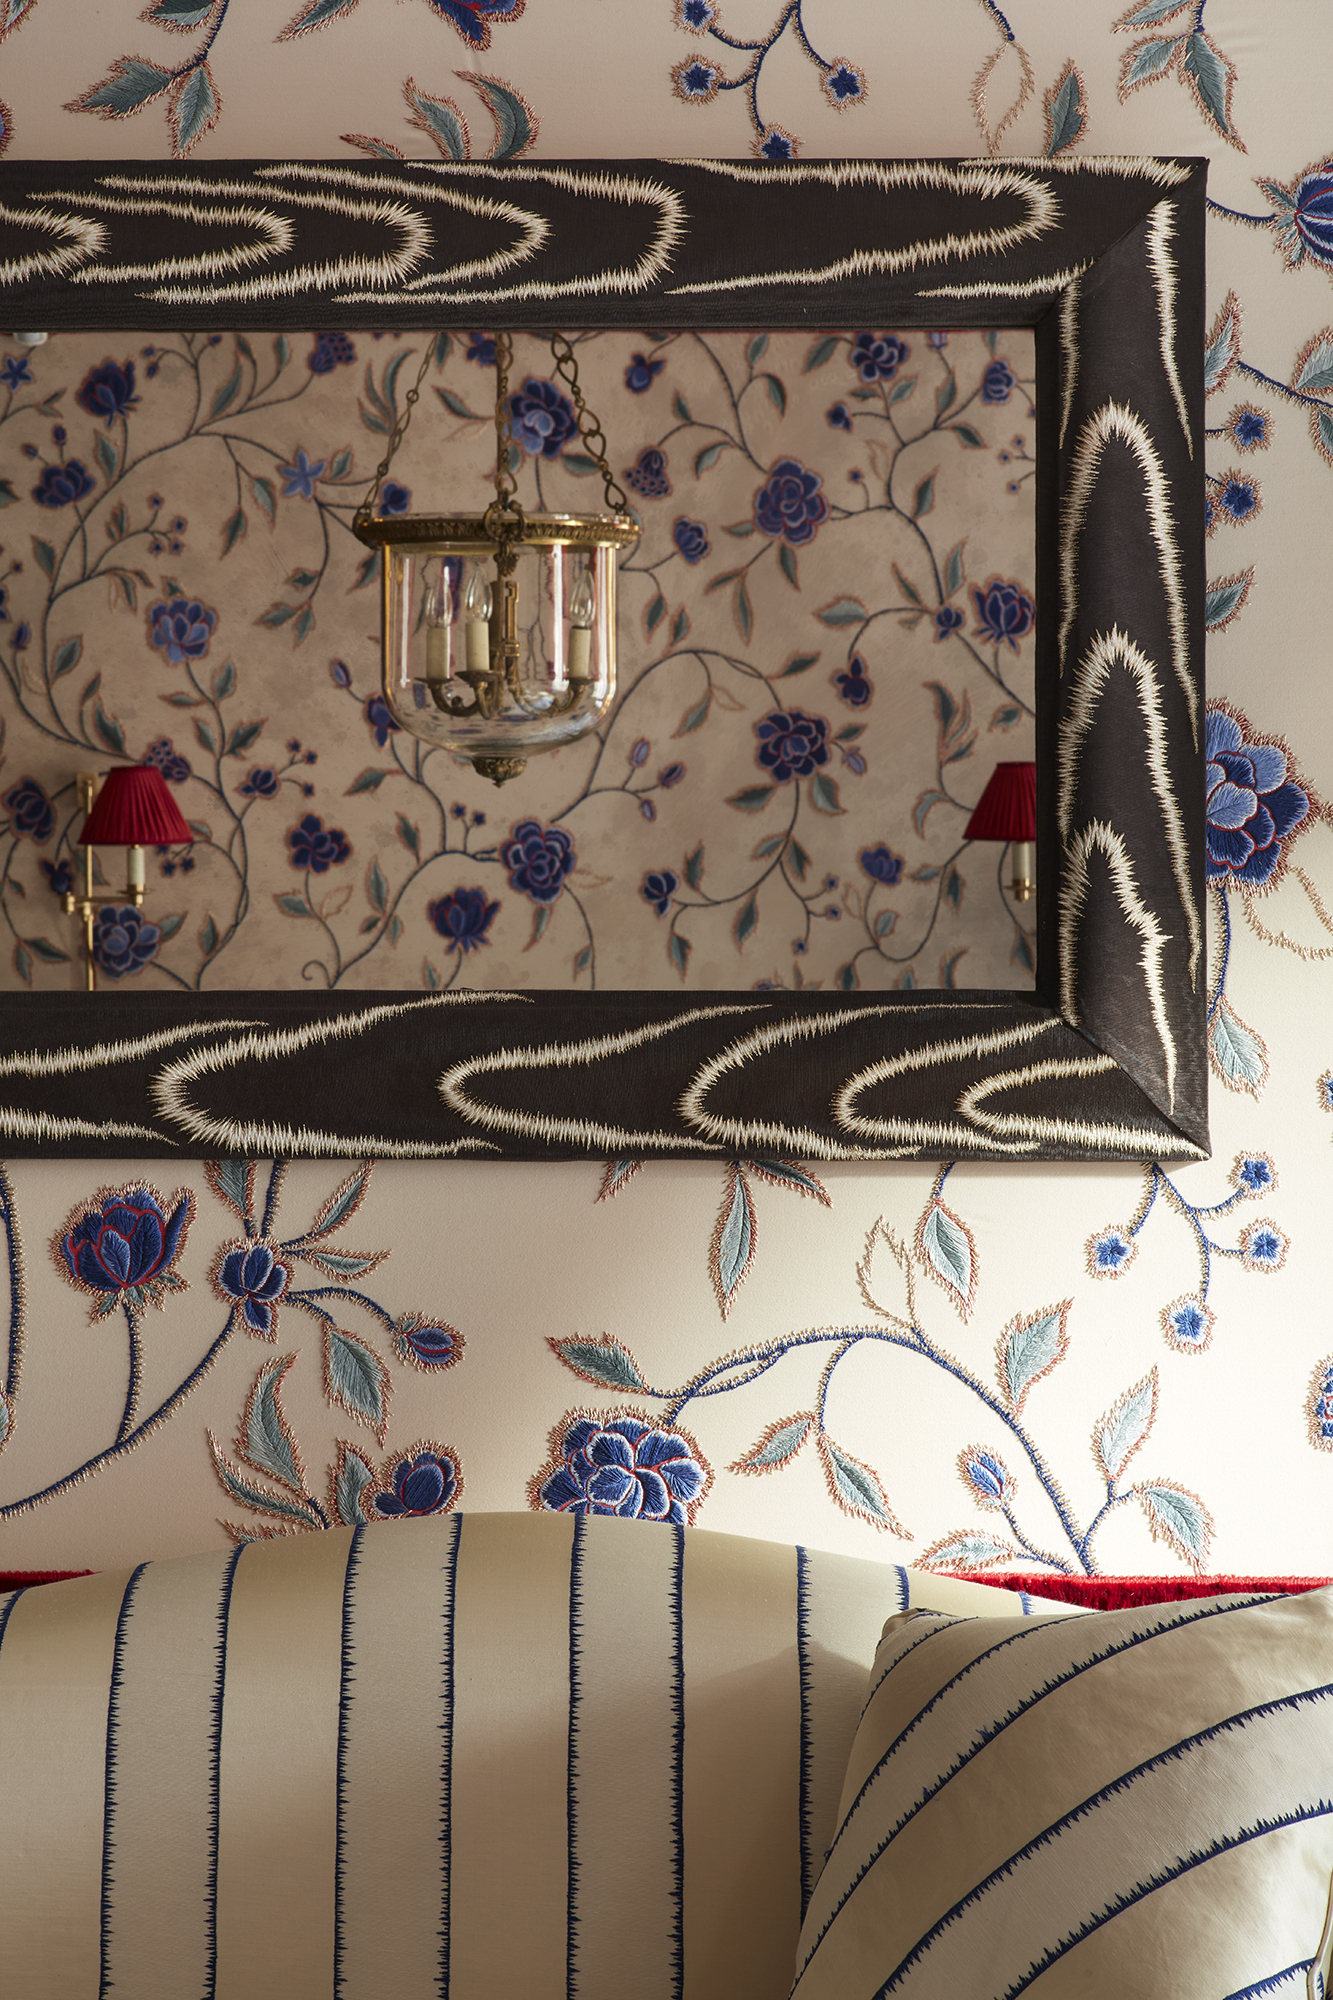 The de Gournay hand embroidered Flora wallcovering, hand embroidered Faux Bois on mirror frame and hand embroidered Stripe upholstery from the Salon Prive collection by Alessandra Branca